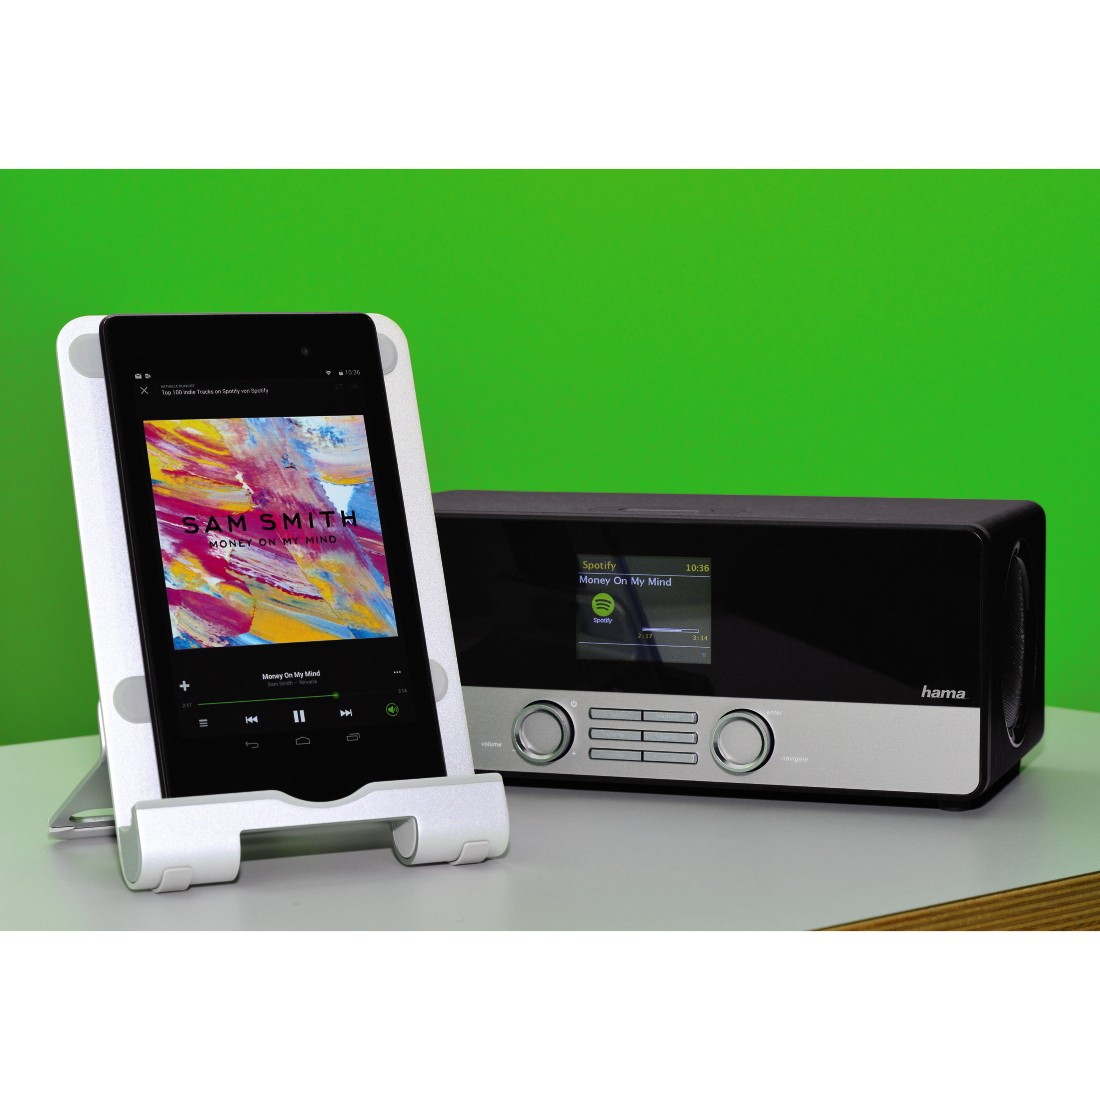 awx5 High-Res Appliance 5 - Hama, DIR3100MS Digital Radio, Internet Radio/DAB+/FM/Multi-Room/ App Control